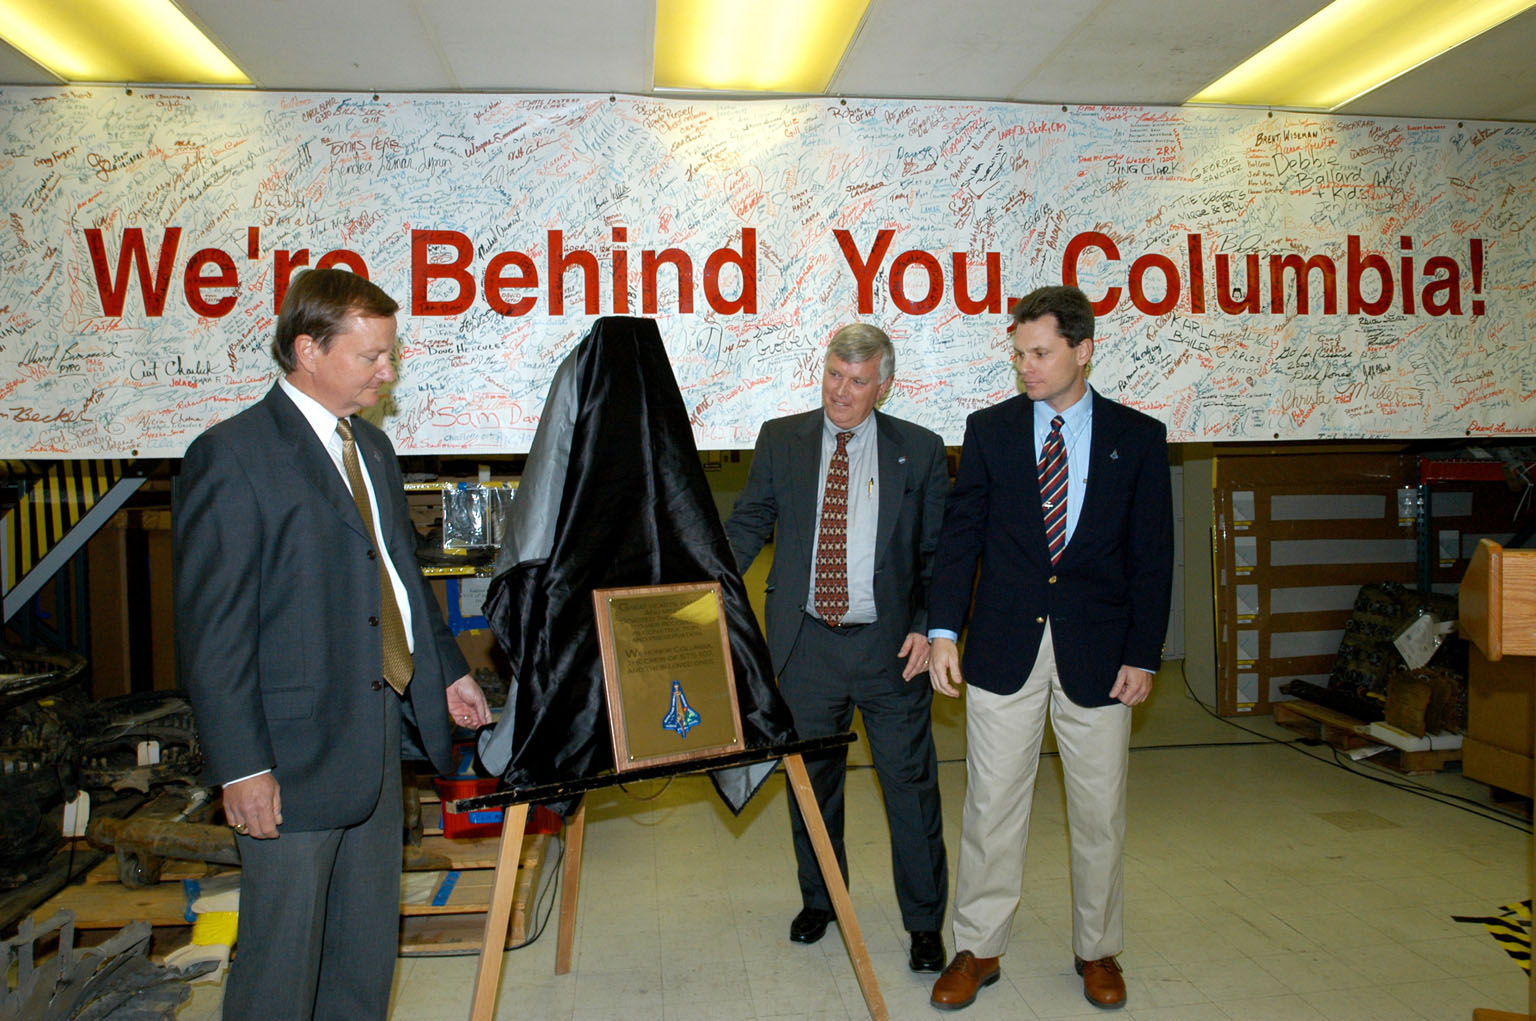 KENNEDY SPACE CENTER, FLA. - In the Vehicle Assembly Building, Shuttle Launch Director Mike Leinbach, Center Director Jim Kennedy and NASA Vehicle Manager Scott Thurston unveil a plaque honoring ?Columbia, the crew of STS-107, and their loved ones.? The site is the ?Columbia room,? a permanent repository of the debris collected in the aftermath of the tragic accident Feb. 1, 2003, that claimed the orbiter and lives of the seven-member crew. The dedication of the plaque was made in front of the 40-member preservation team.